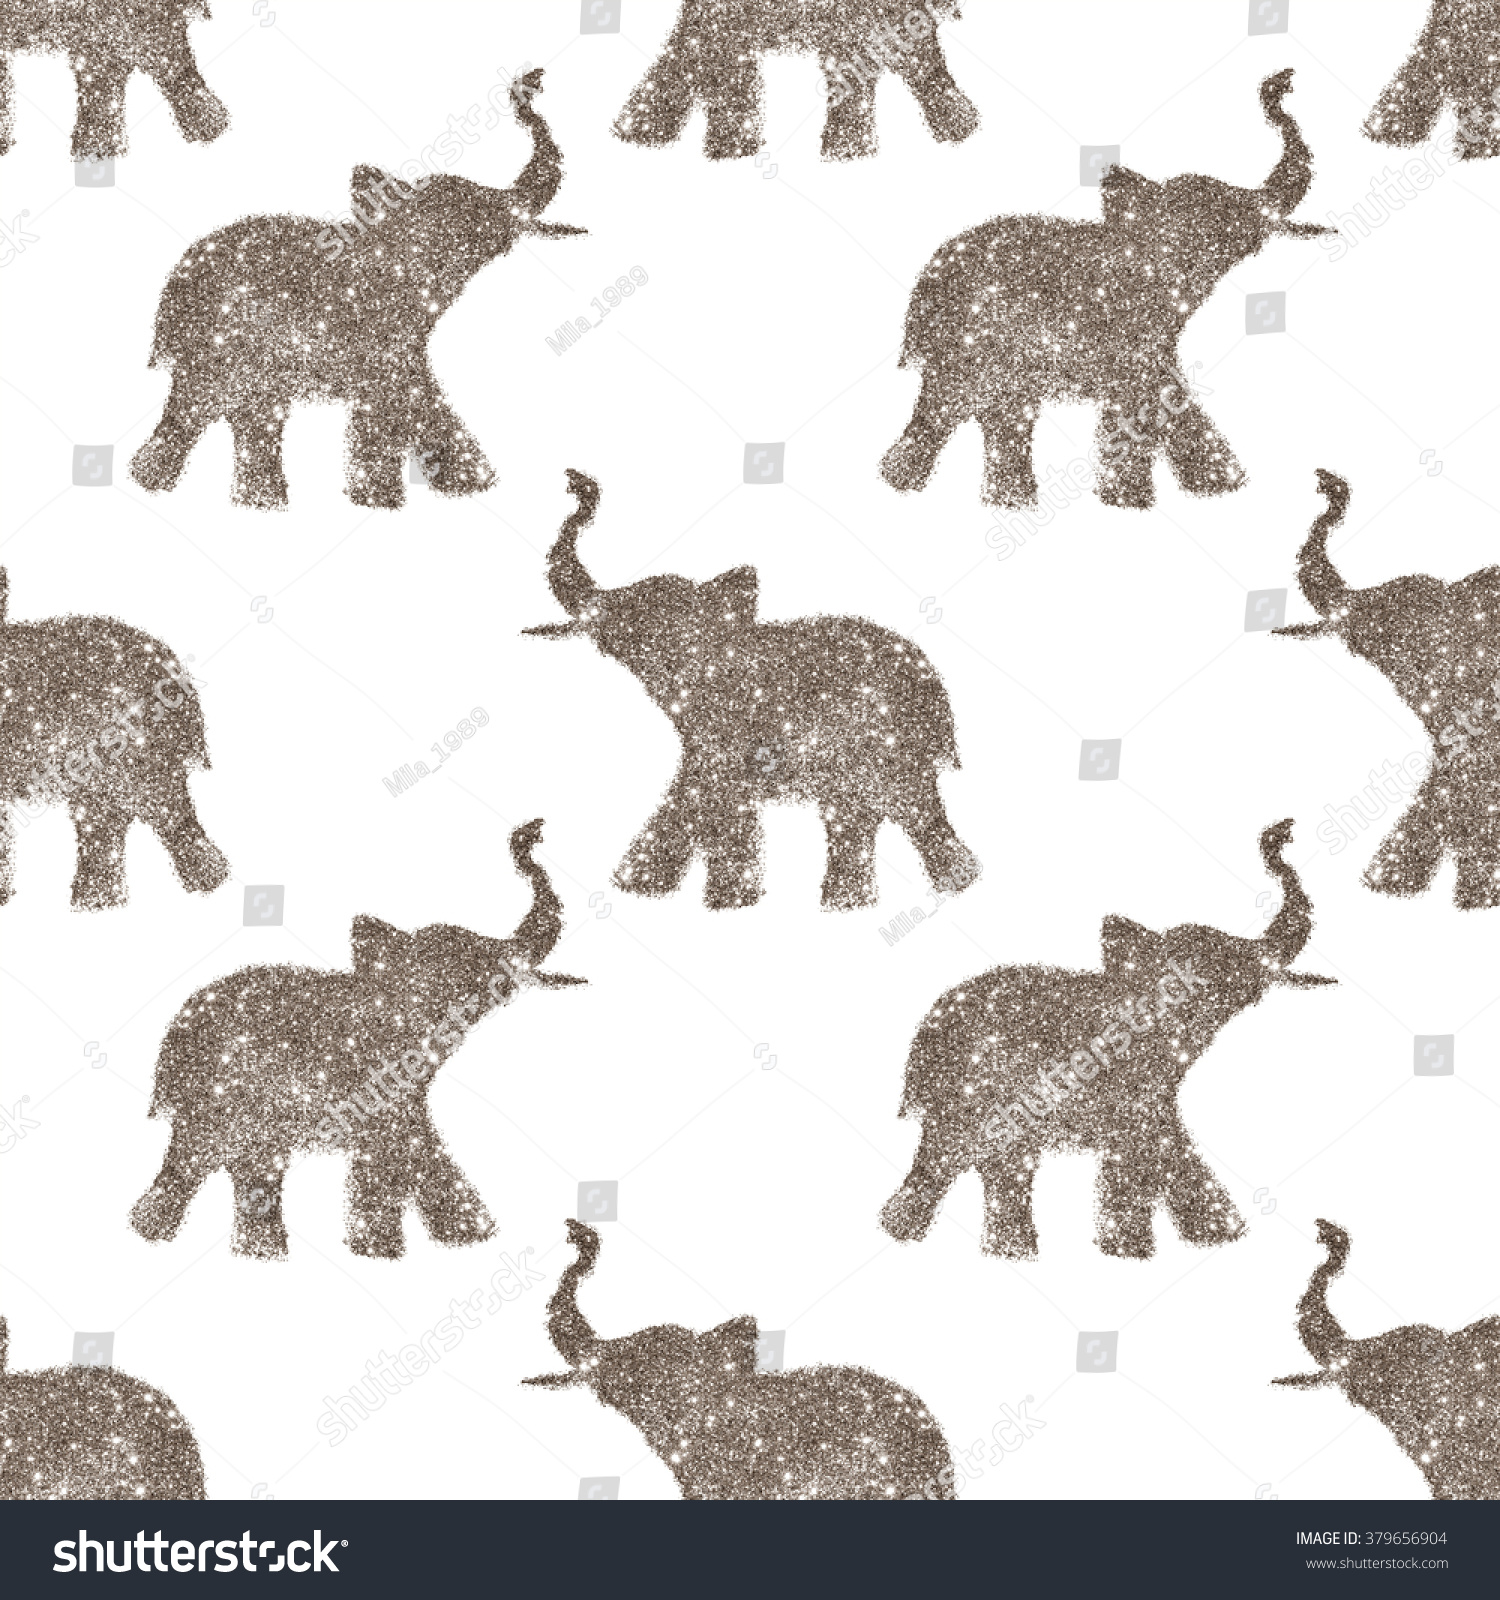 Seamless pattern nice abstract elephants glitter stock seamless pattern with nice abstract elephants of glitter their trunks raised up good luck biocorpaavc